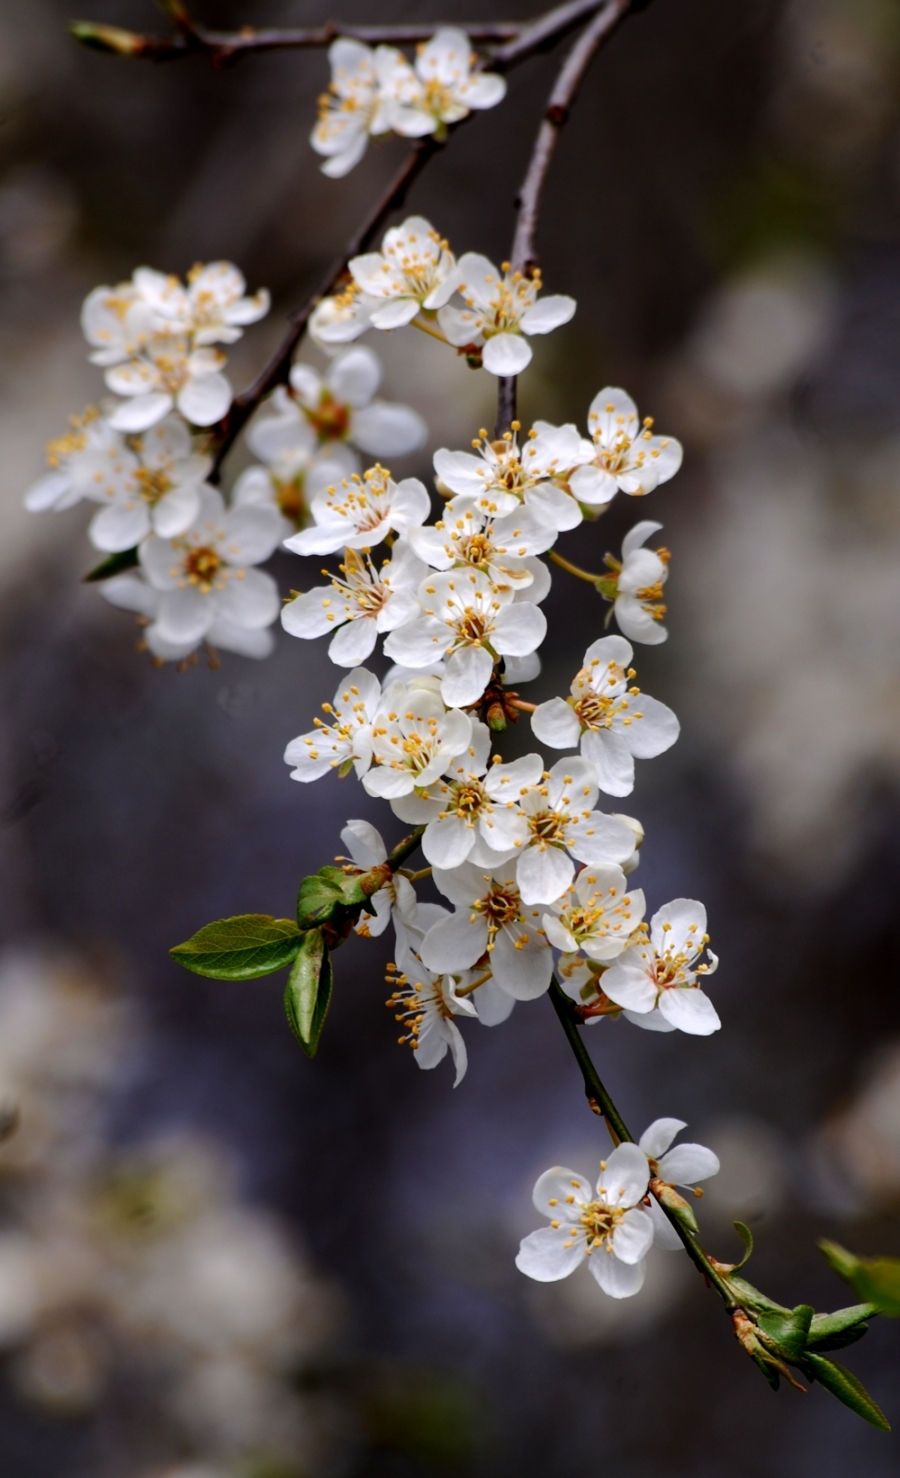 A beautiful spray of sloe (blackthorn) blossom.